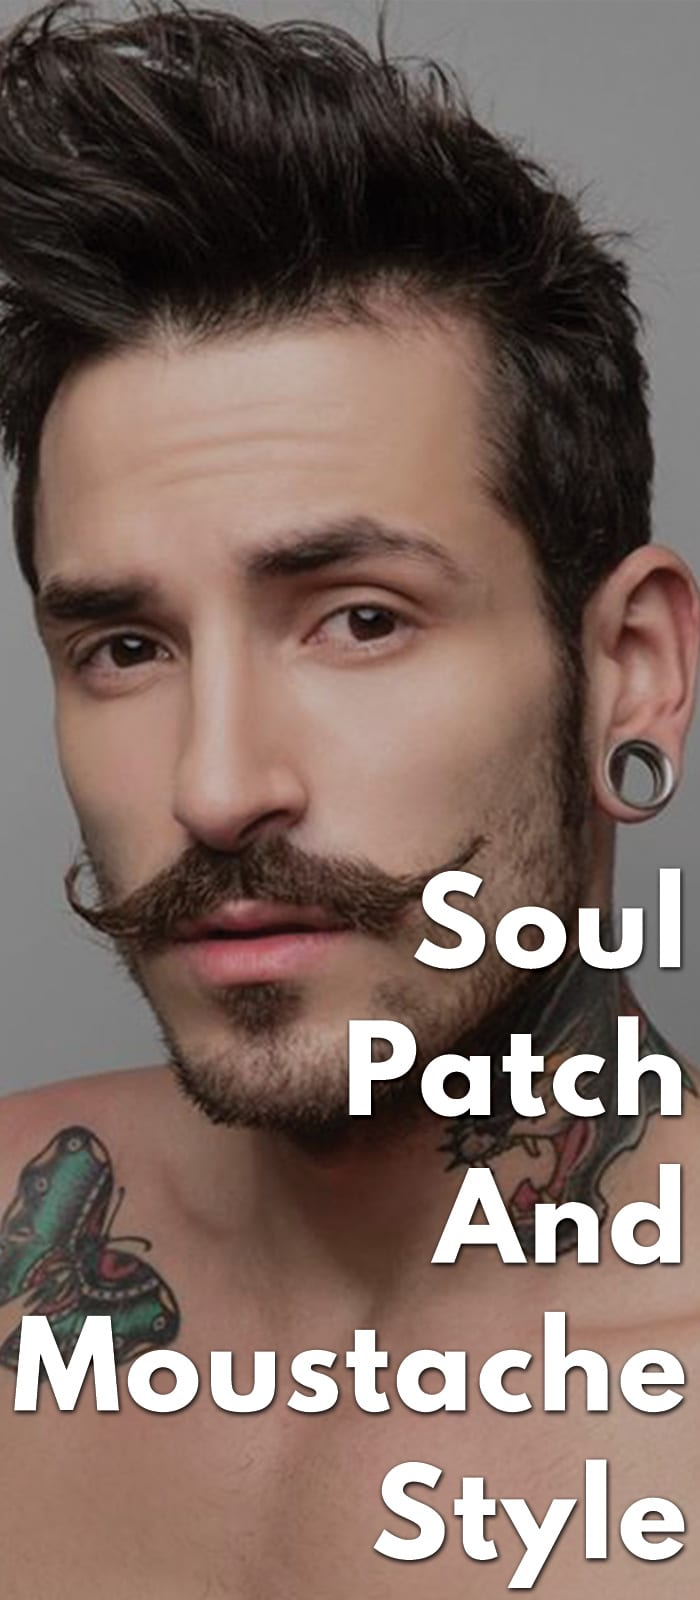 Soul-Patch-And-Moustache-Style.